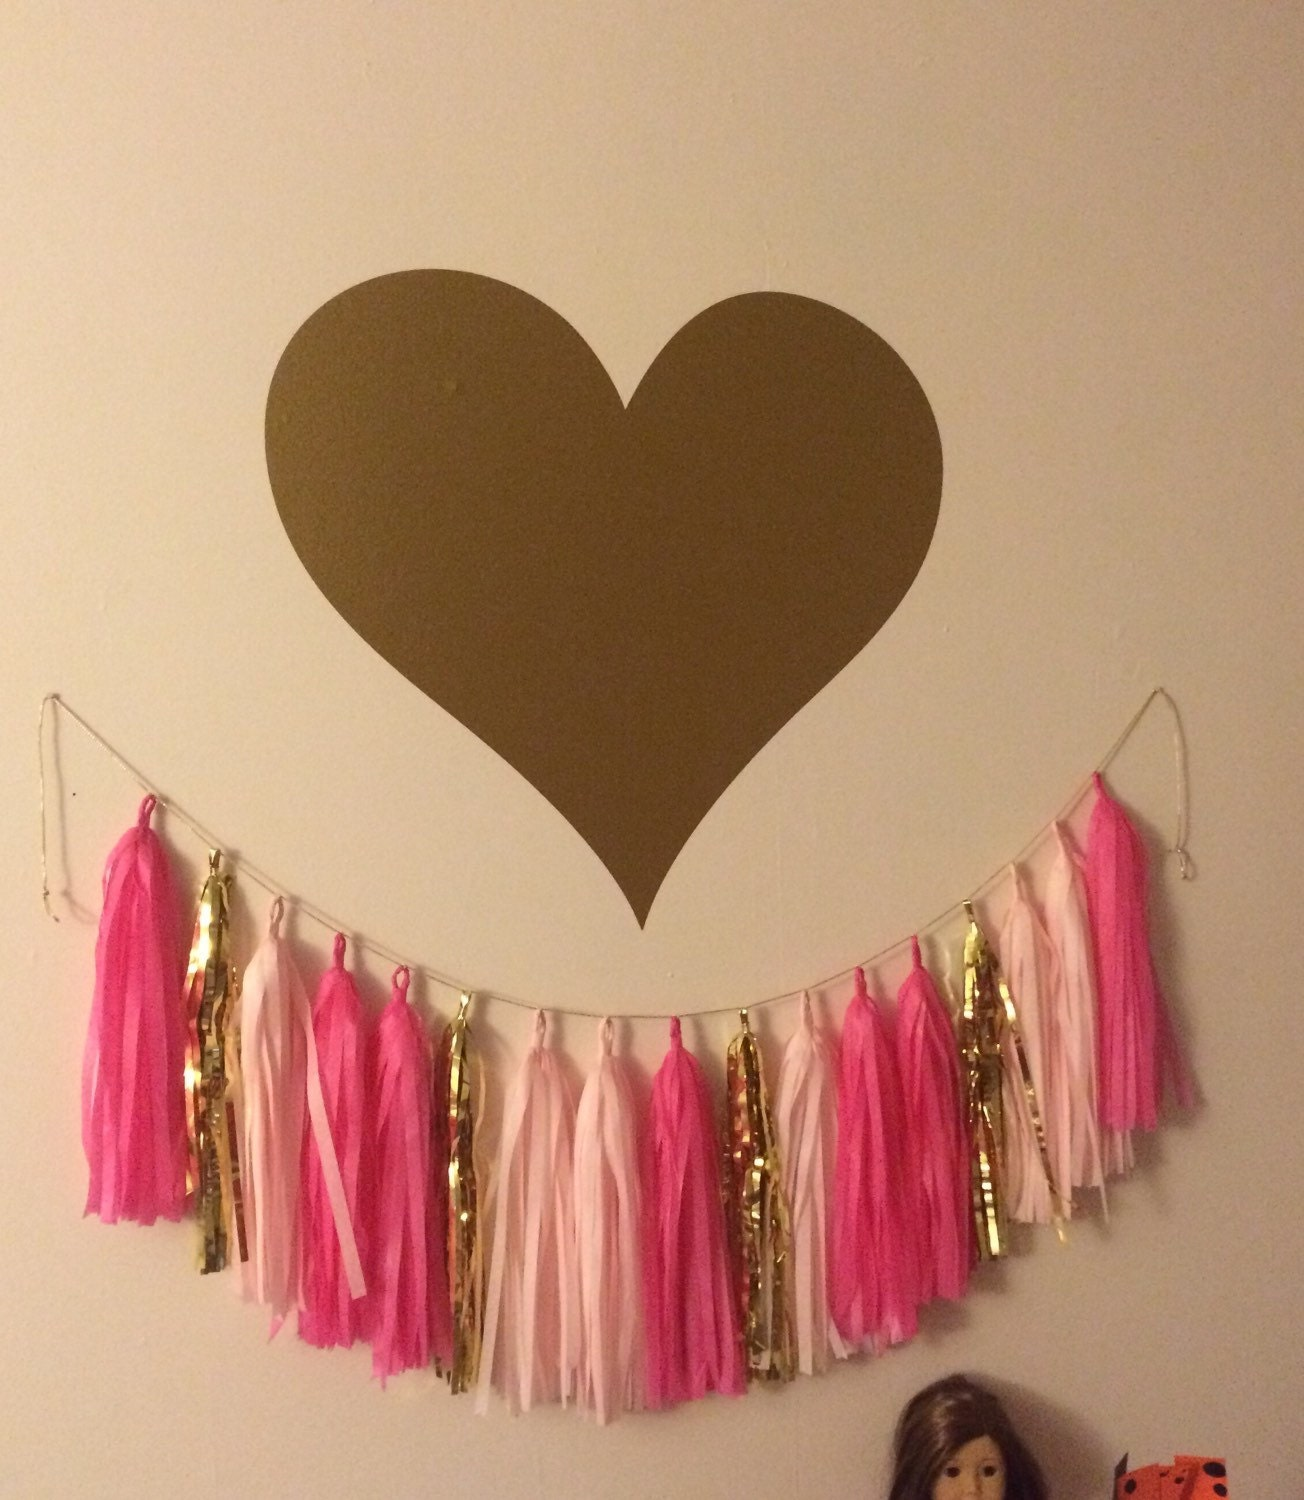 Heart wall decal large gold heart decal girls nursery bedroom for Cute gold heart wall decals